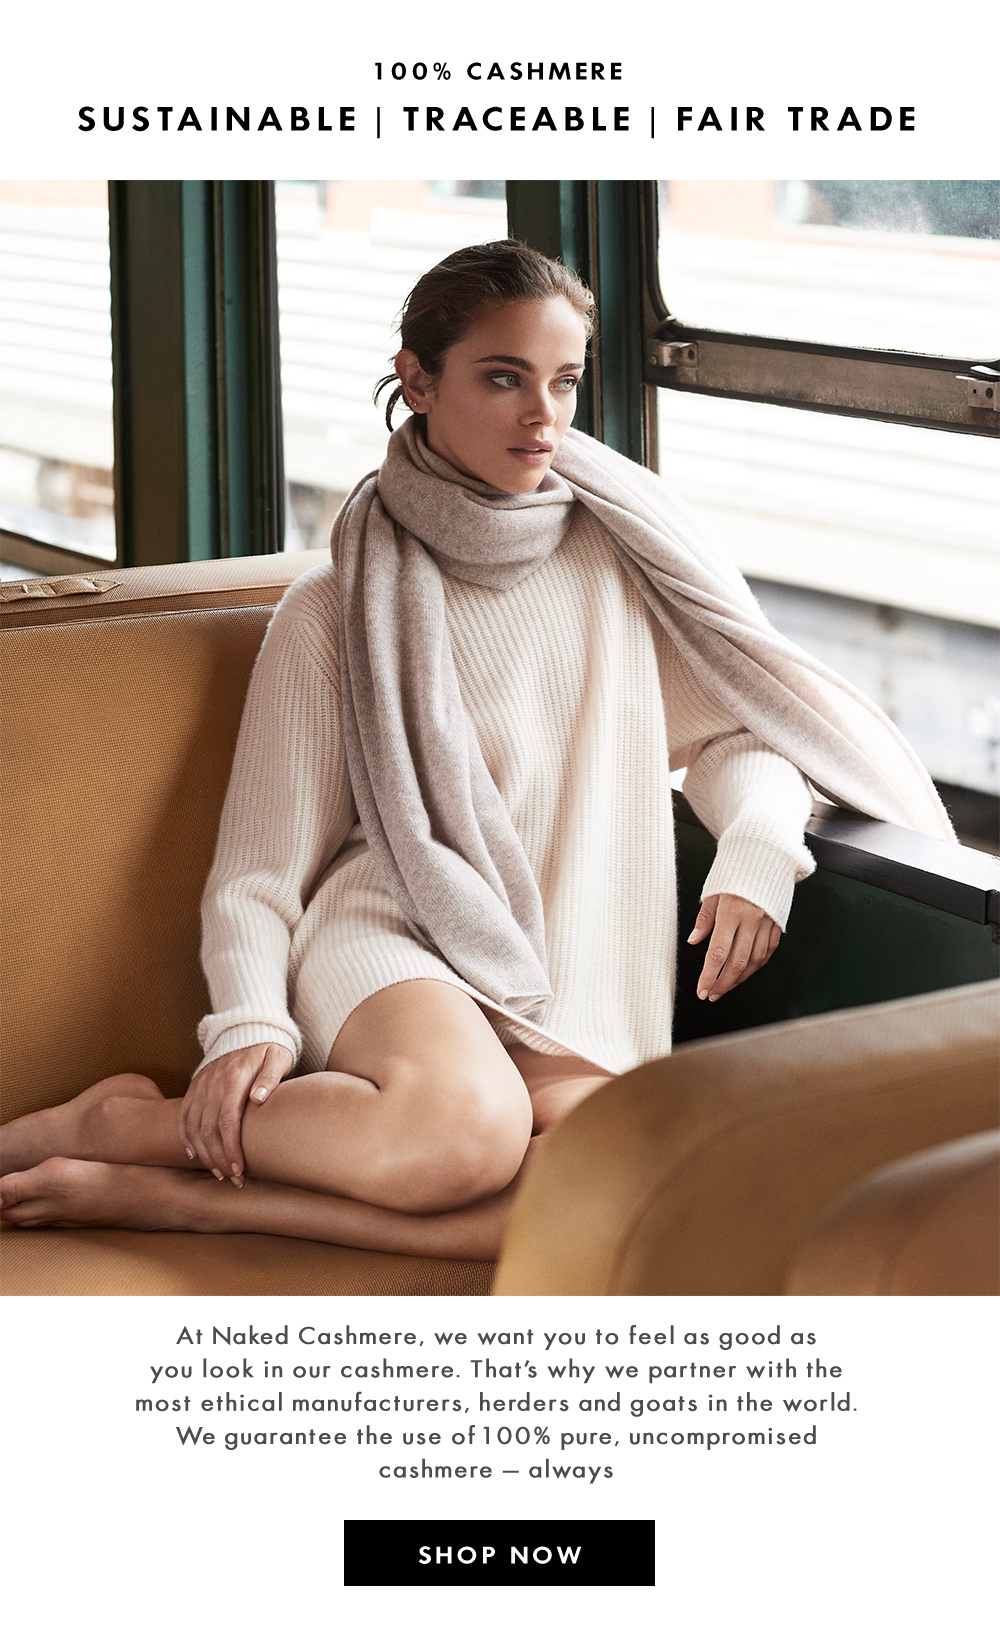 Naked Cashmere